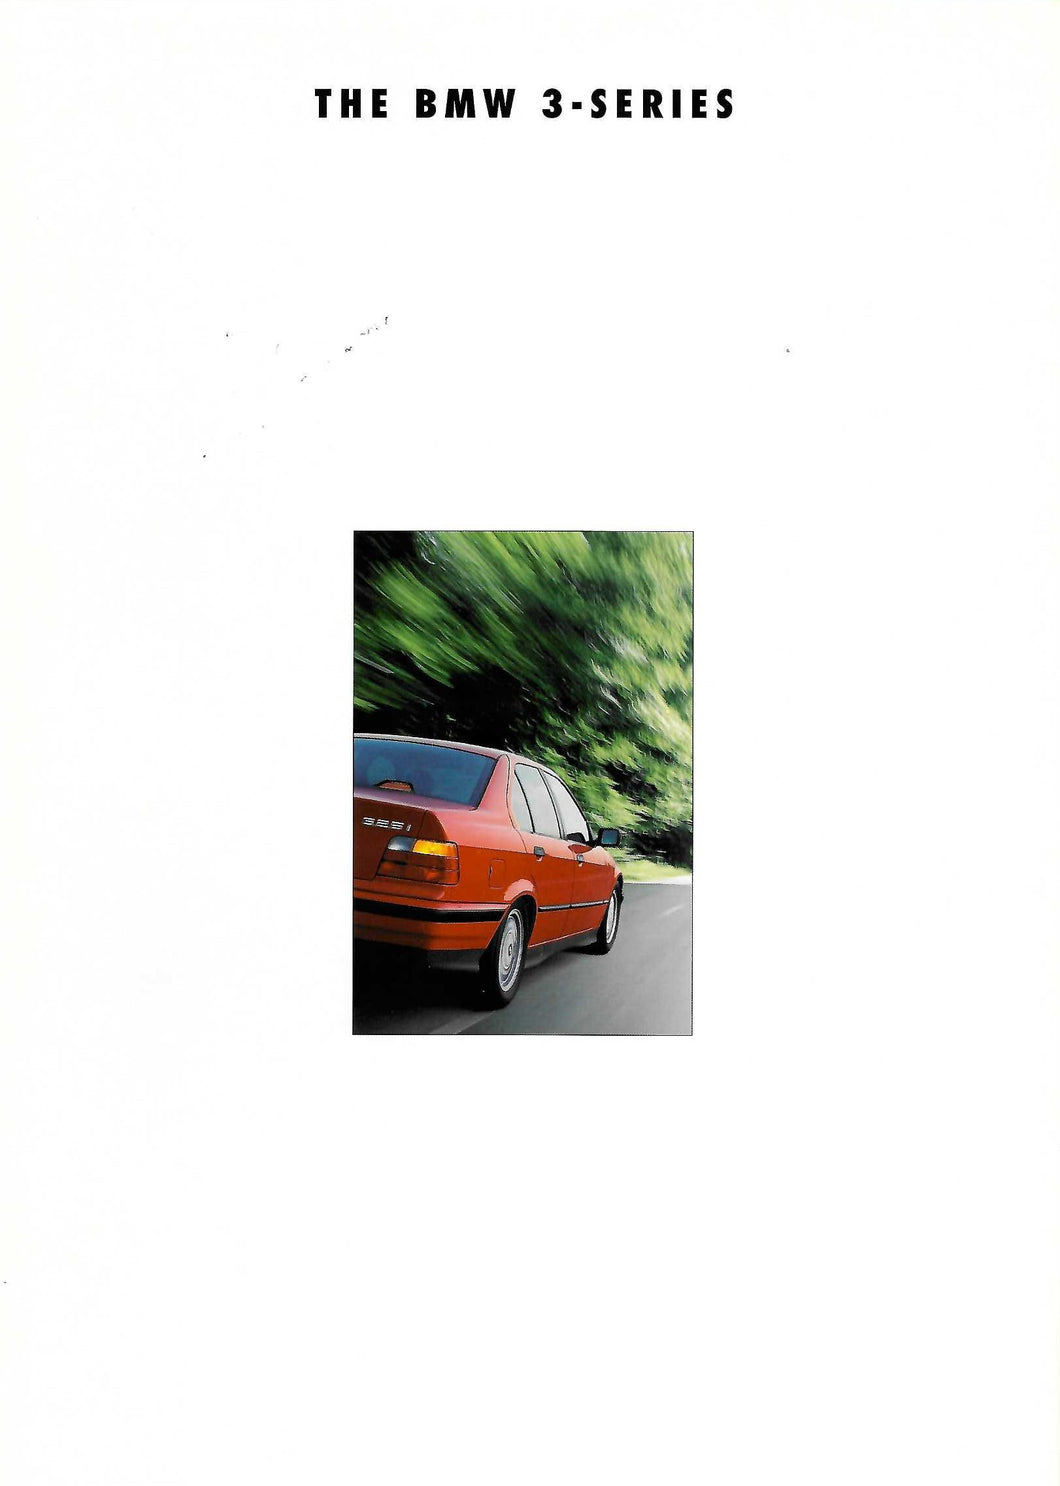 Brochure - THE BMW 3-SERIES (1993)